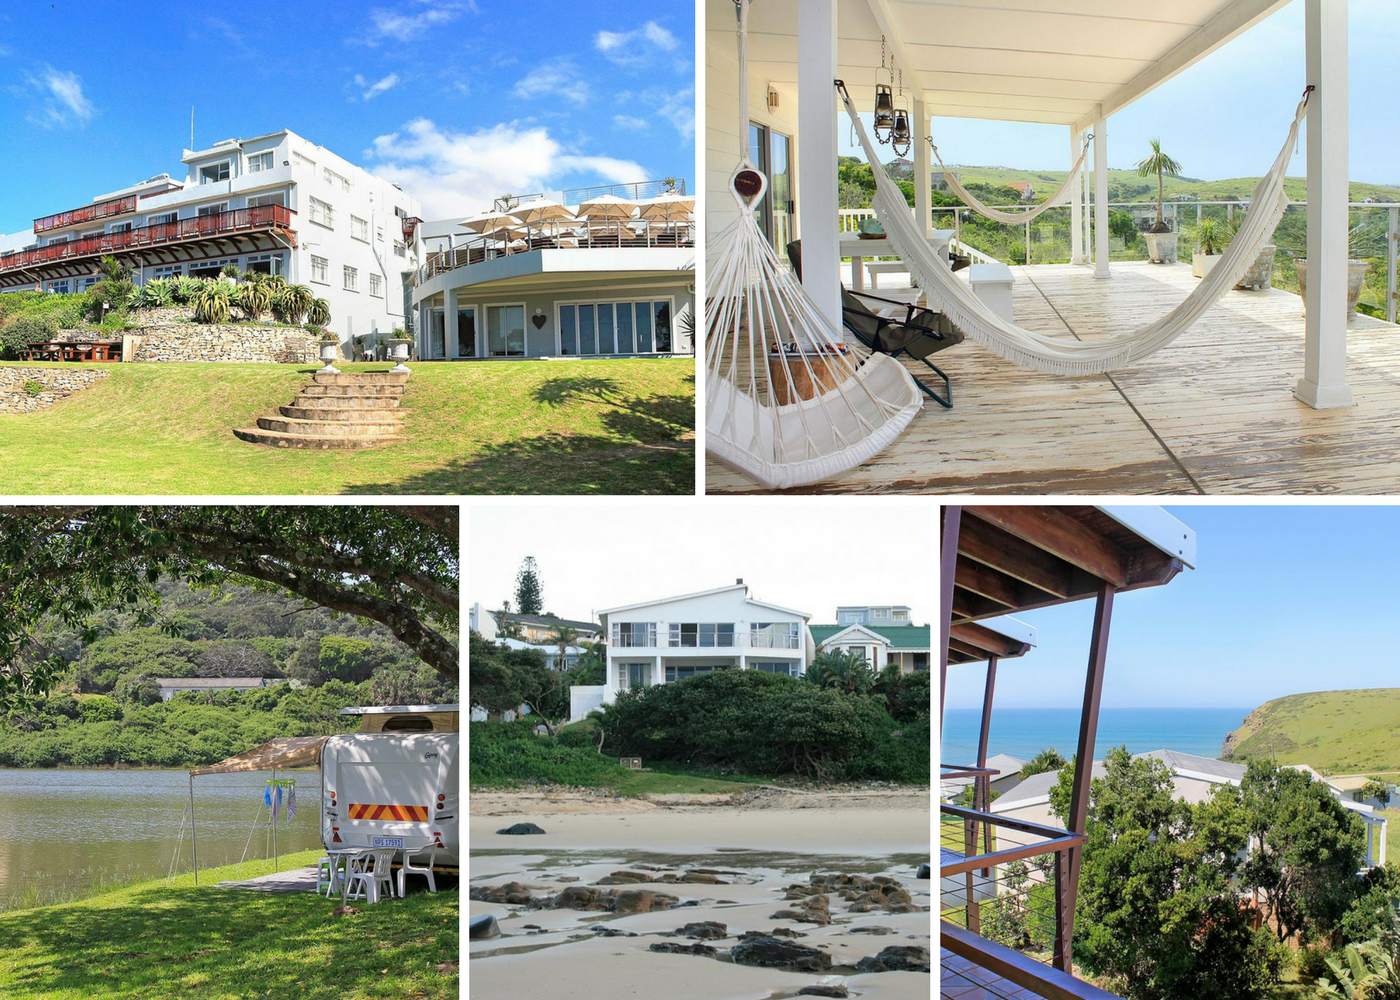 Top left: Morgan Bay Hotel, Top right: The Sullies, Bottom left: Morgan Bay Caravan Park, Bottom middle: Seaside Holiday House, Bottom right: Ocean Valley View